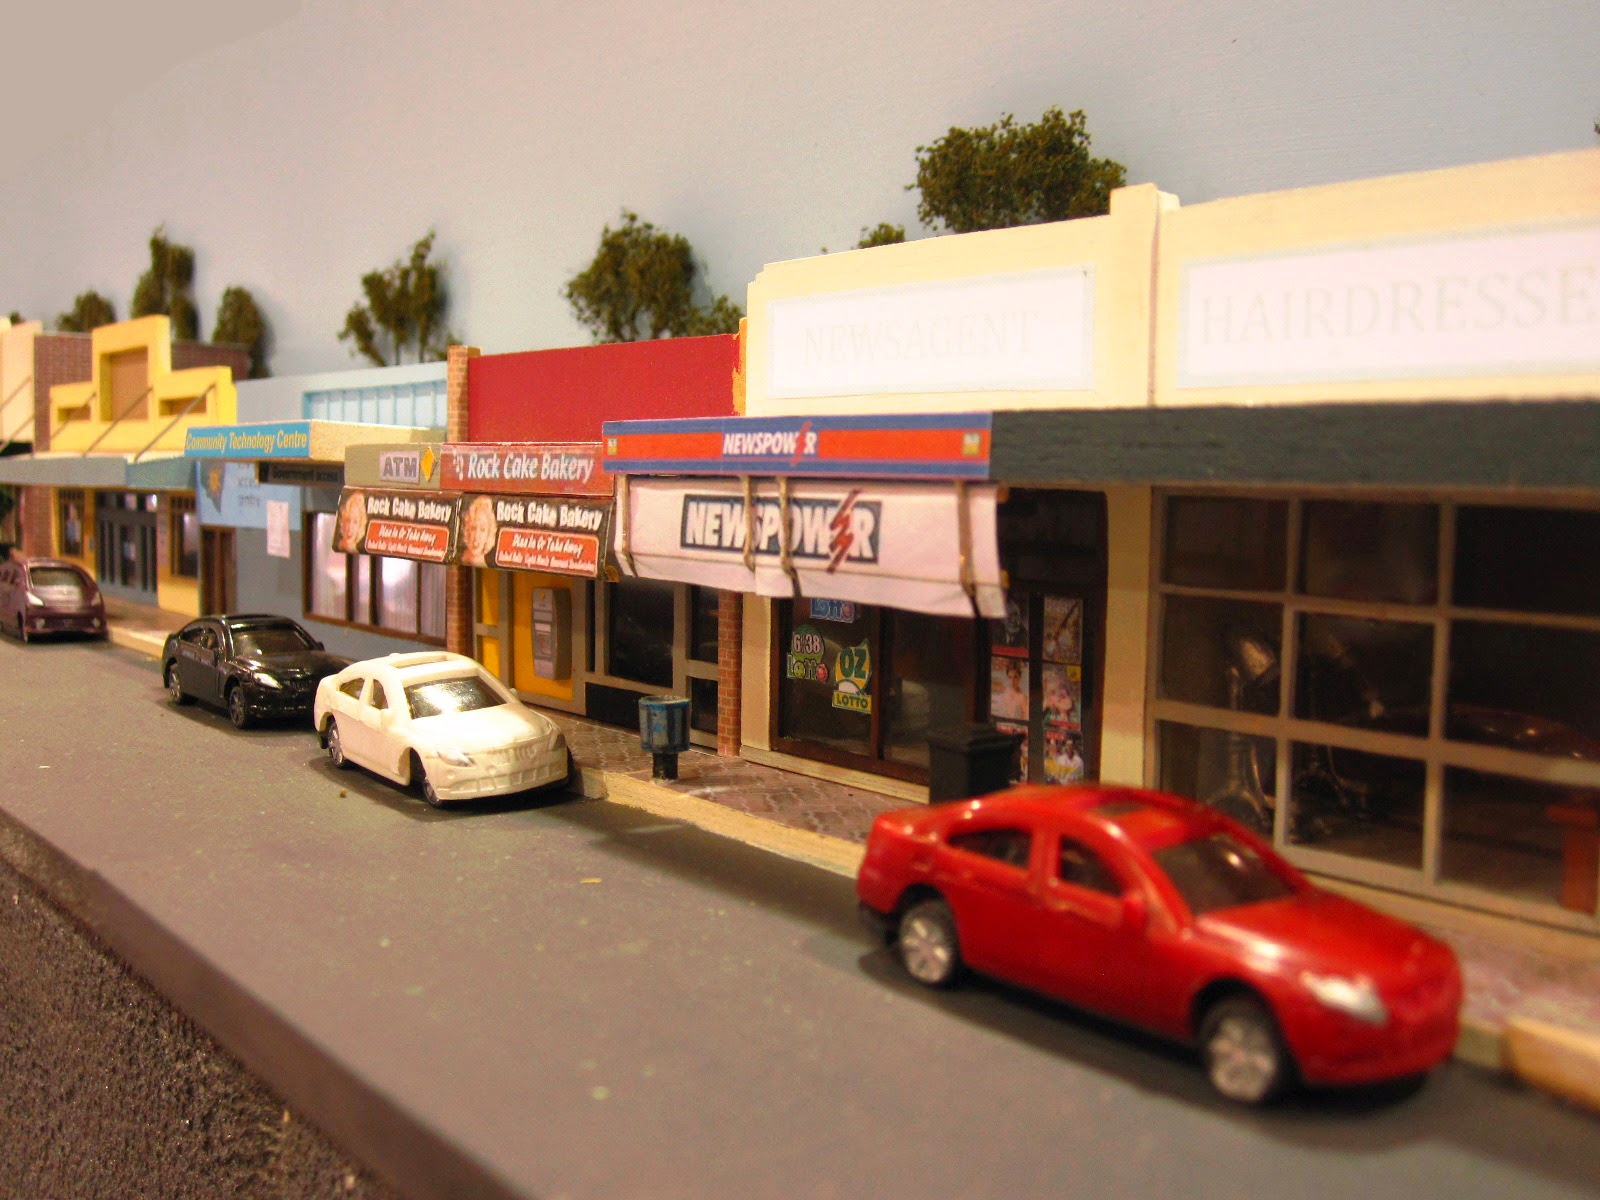 Quarter inch scale modern Australian town street scene with newsagents and cars parked outside.